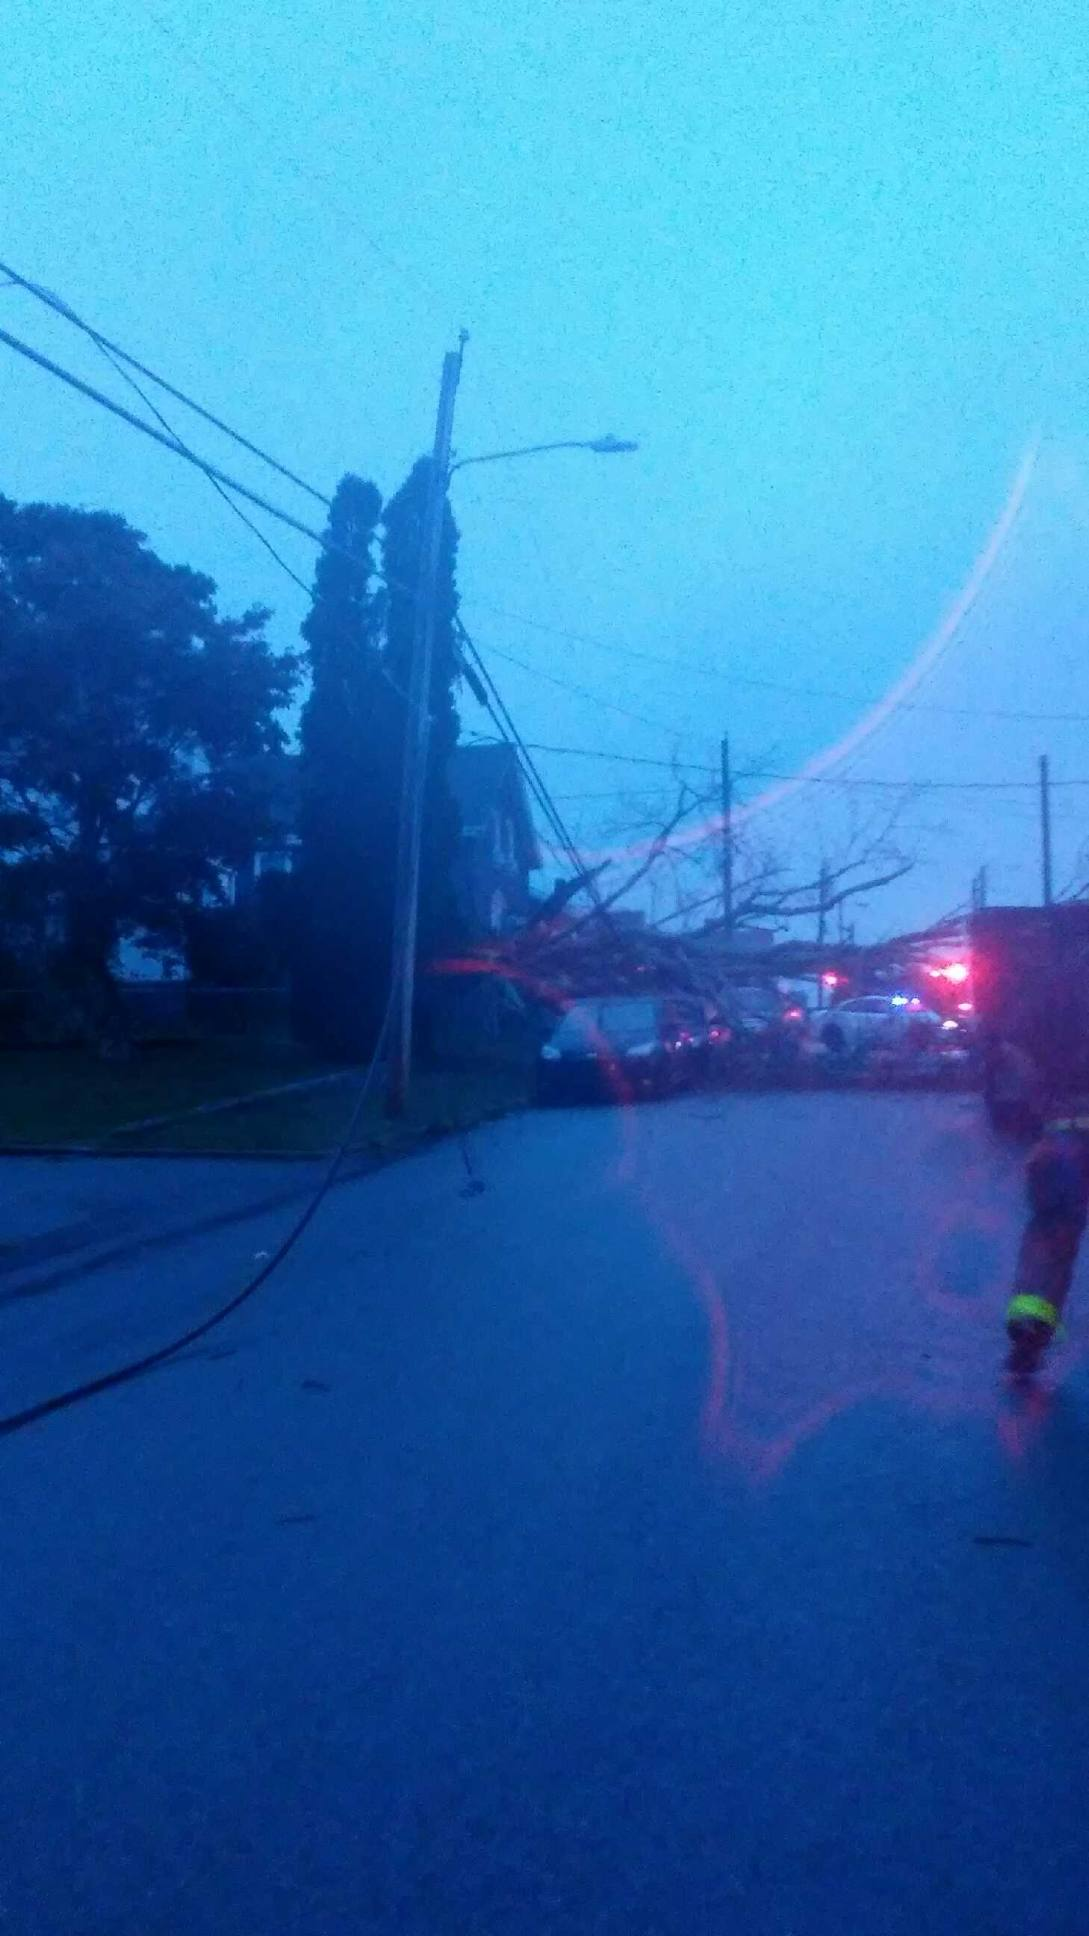 A large tree came crashing down on power lines and cars in Tiverton Wednesday, Sept. 20, 2017. (Submitted photo)